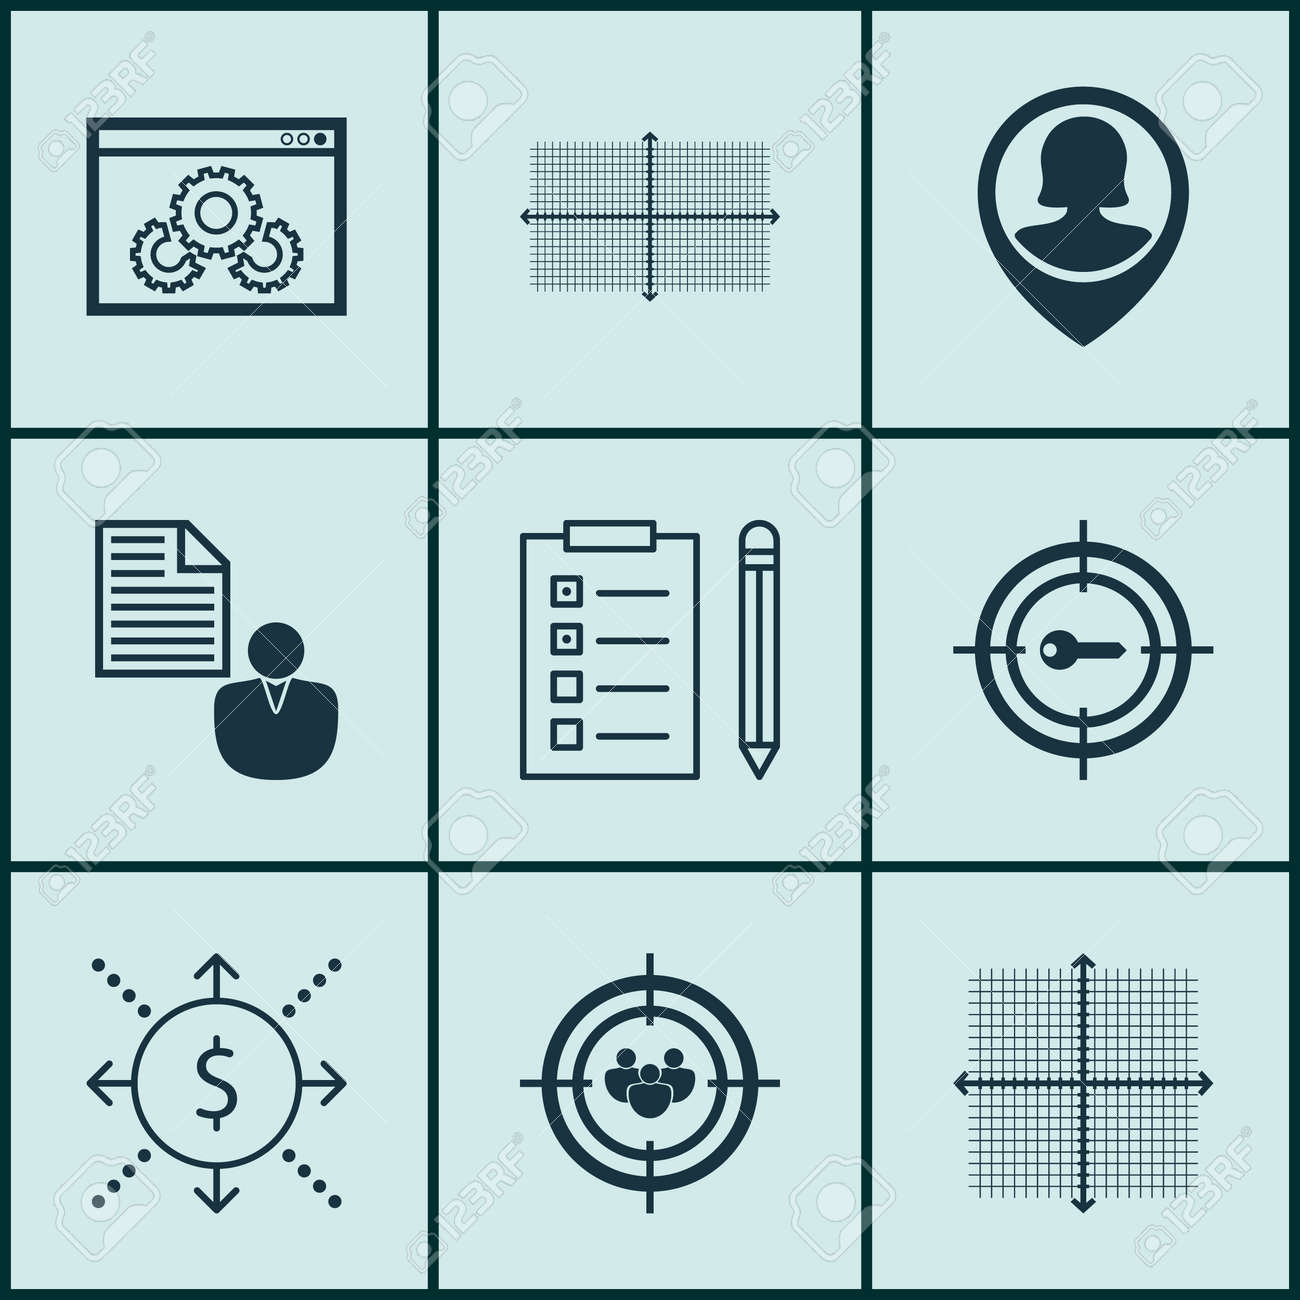 Set Of 9 Universal Editable Icons For Project Management, Statistics